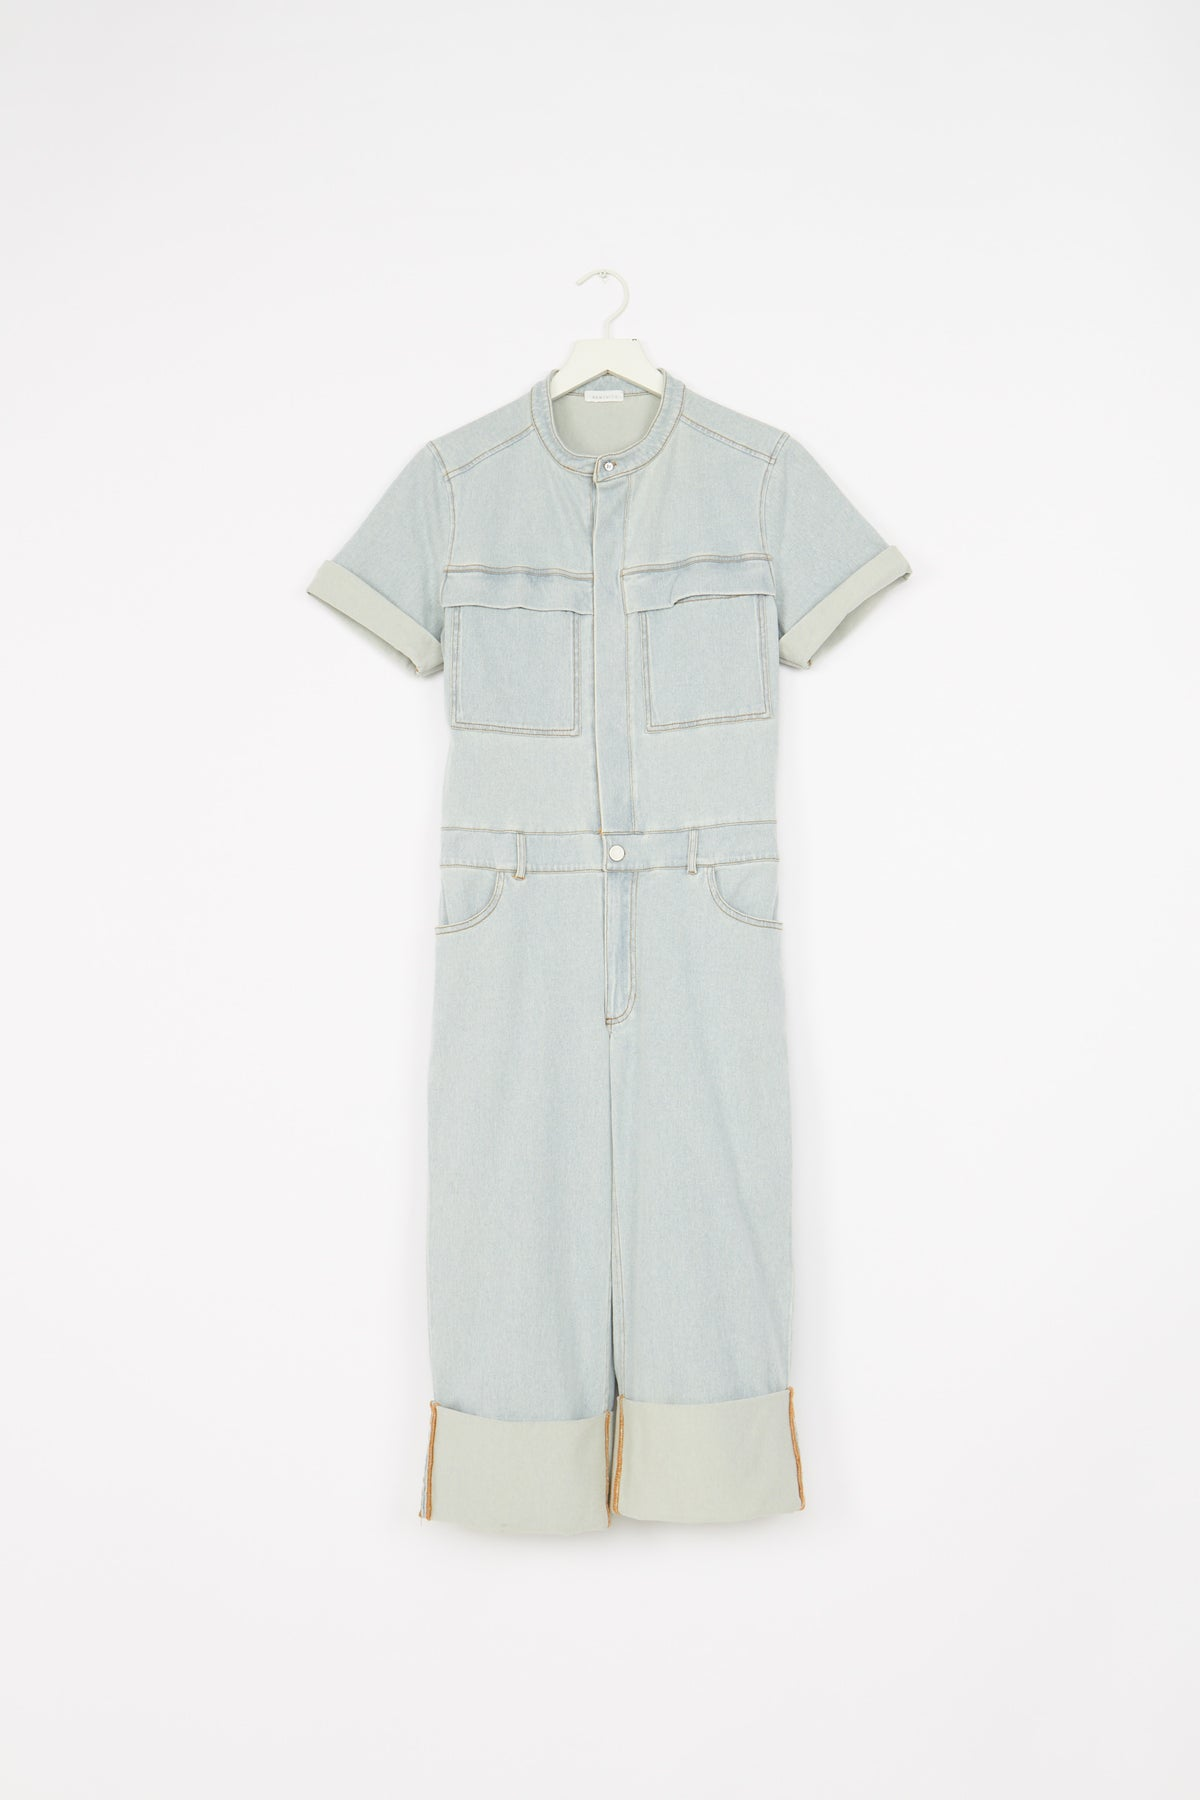 HARLEN WORKSUIT